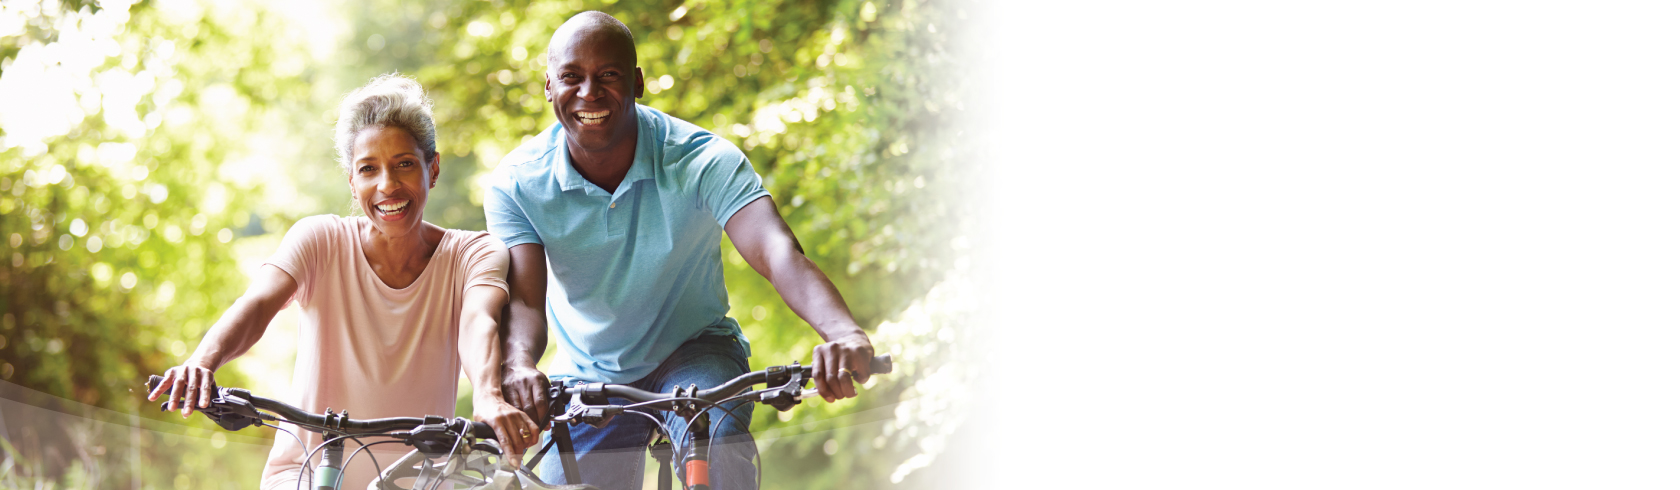 TFCU Rate Booster Photo of People Riding a Bike